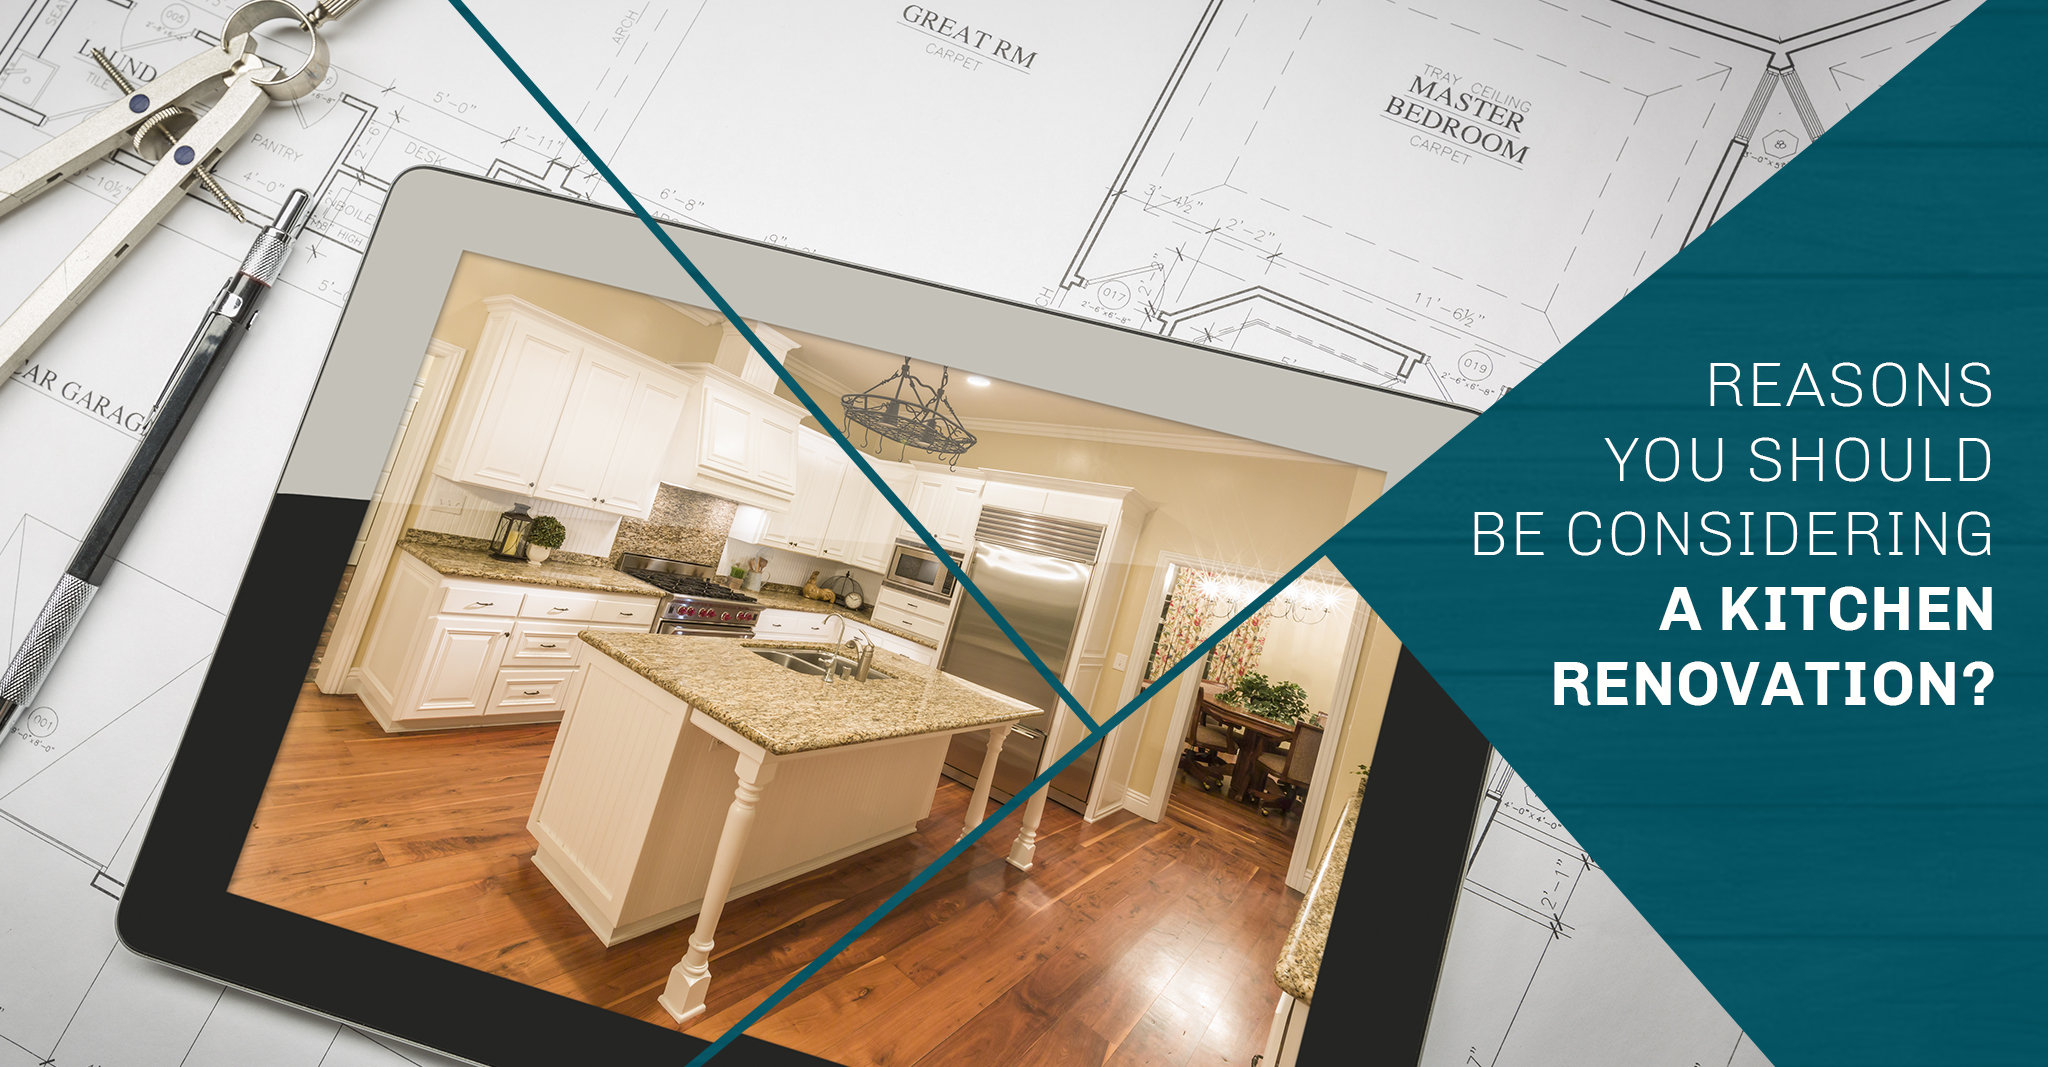 Reasons You Should Be Considering a Kitchen Renovation?